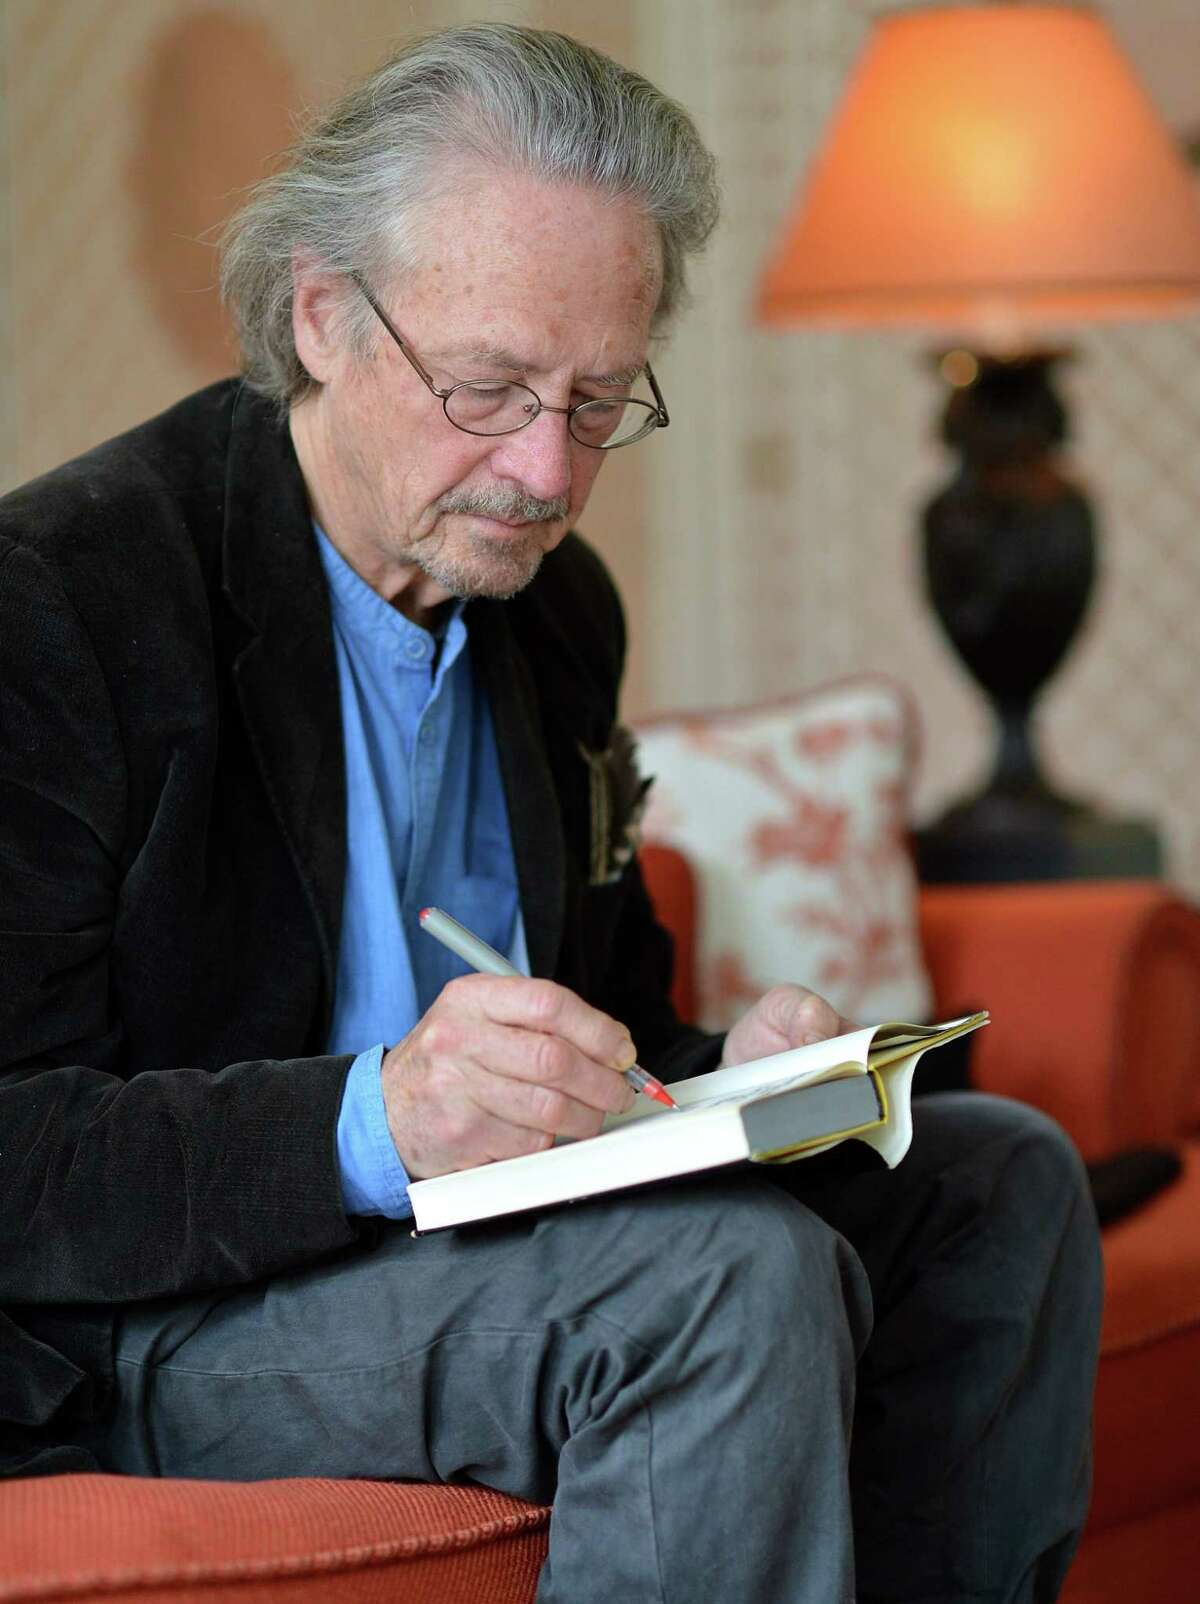 """Austrian novelist and playwright Peter Handke, pictured here in 2012, was awarded the Nobel Literature Prize on Oct. 10, but he became politically notorious in the 1990s for defending Serbia's conduct during the Balkan wars. In 2006, he eulogized Slobodan Milosevic, the Serbian dictator principally responsible. Asked about the corpses of Muslims massacred in Srebrenica in 1995, Handke replied, """"You can stick your corpses up your arse."""""""